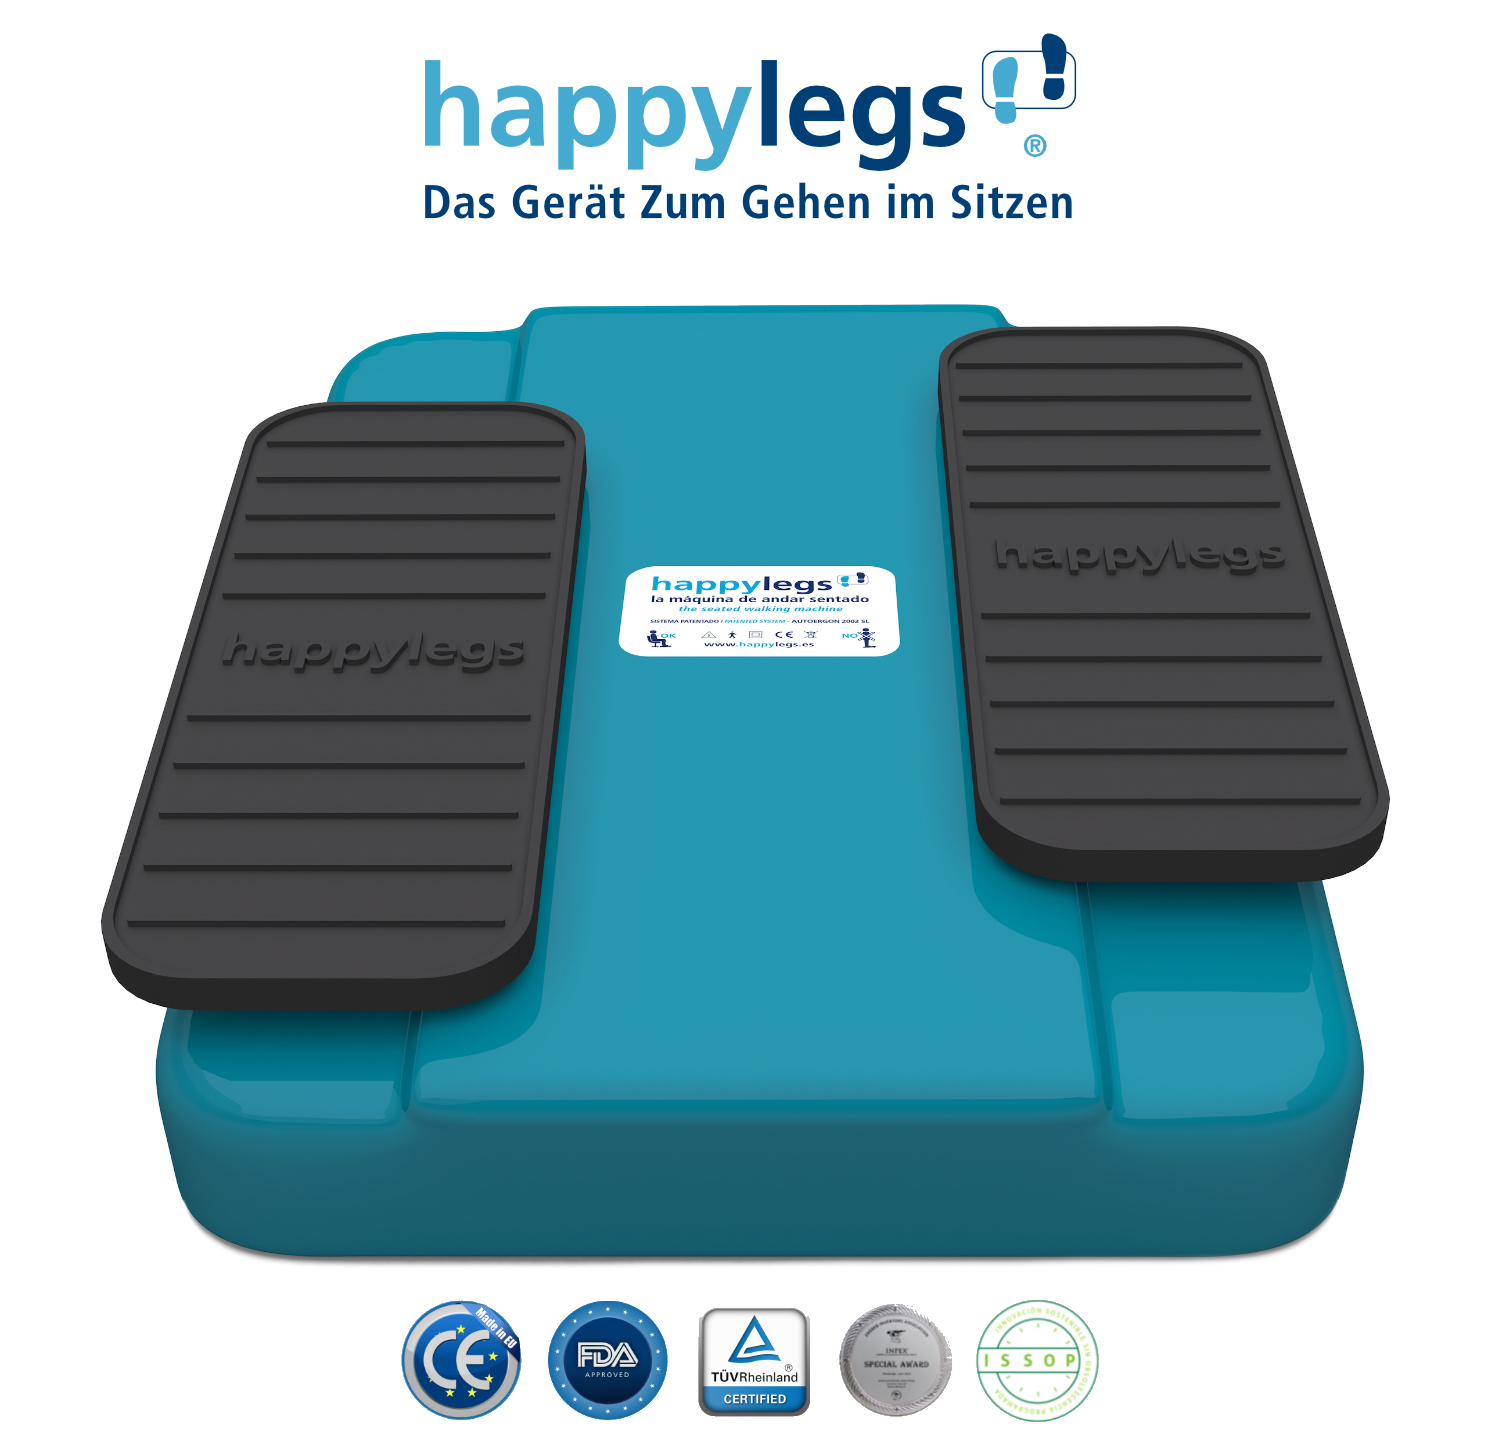 Happylegs Automatische Beintrainer